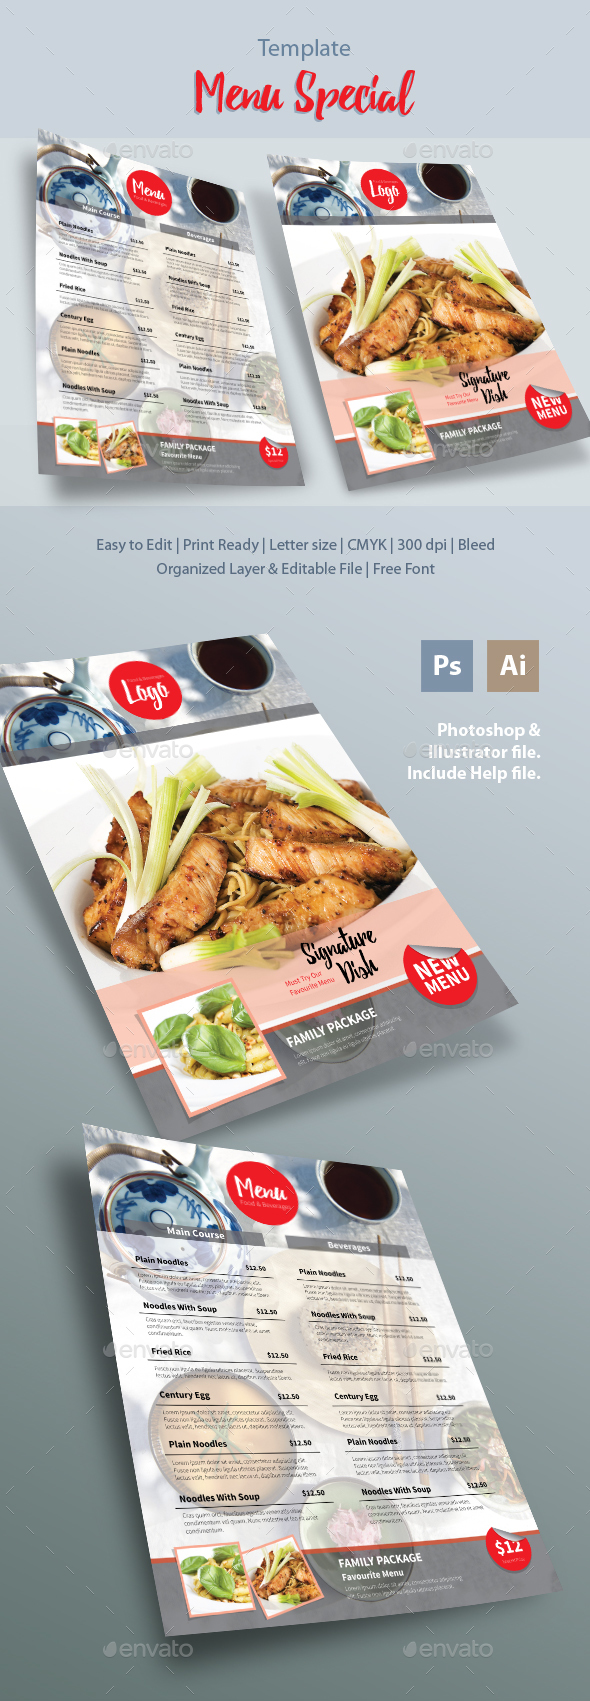 Menu Special Template - Food Menus Print Templates